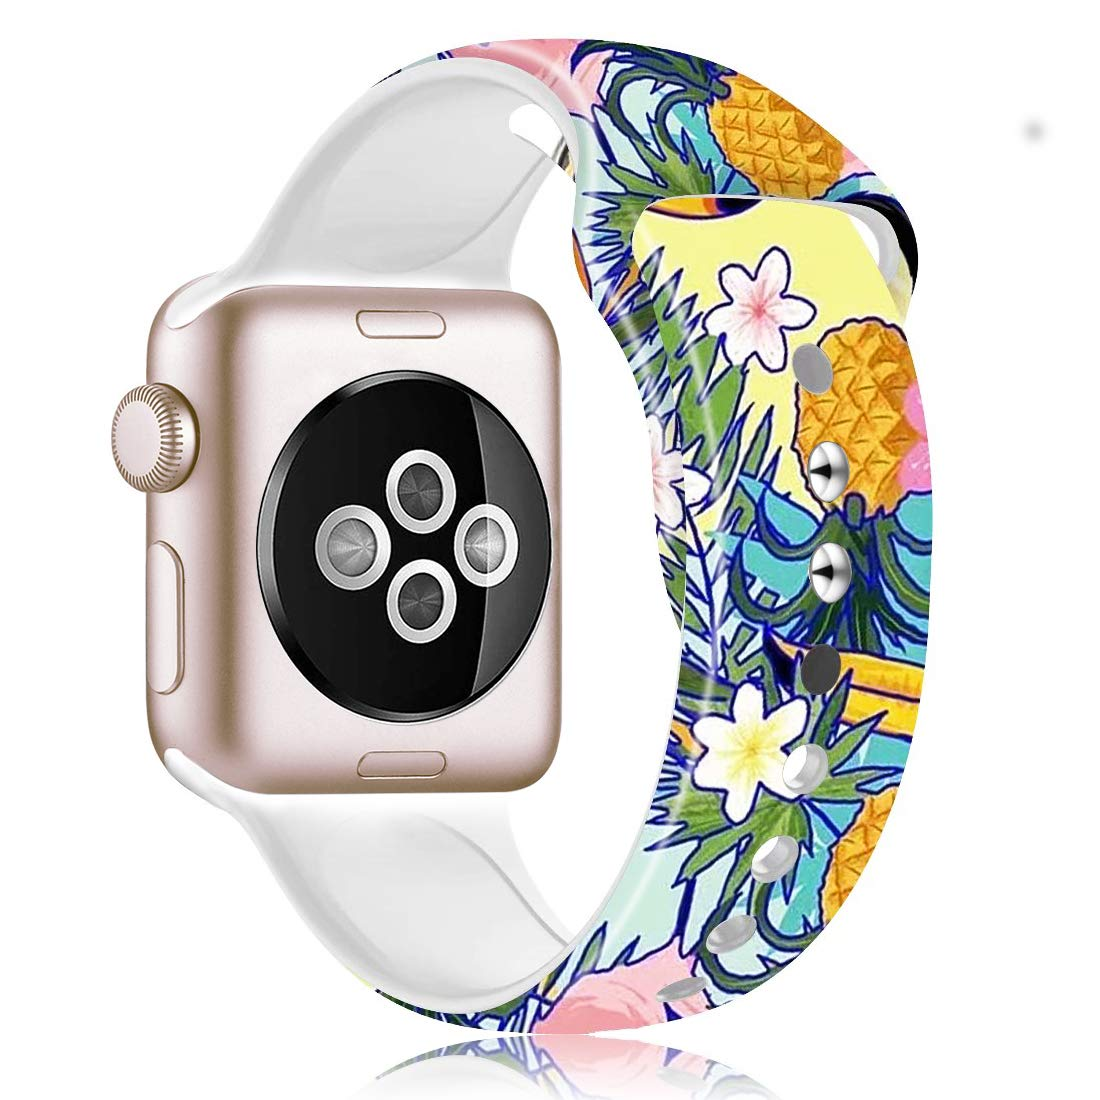 Epsky Compatible with Apple Watch Band Silicone Fadeless Pattern Printed Replacement Floral Strap for iWatch Series 5 Series 4 3 2 1 with 38mm/40mm or 42mm/44mm (Cat paw 3in1, 42mm/44mm)